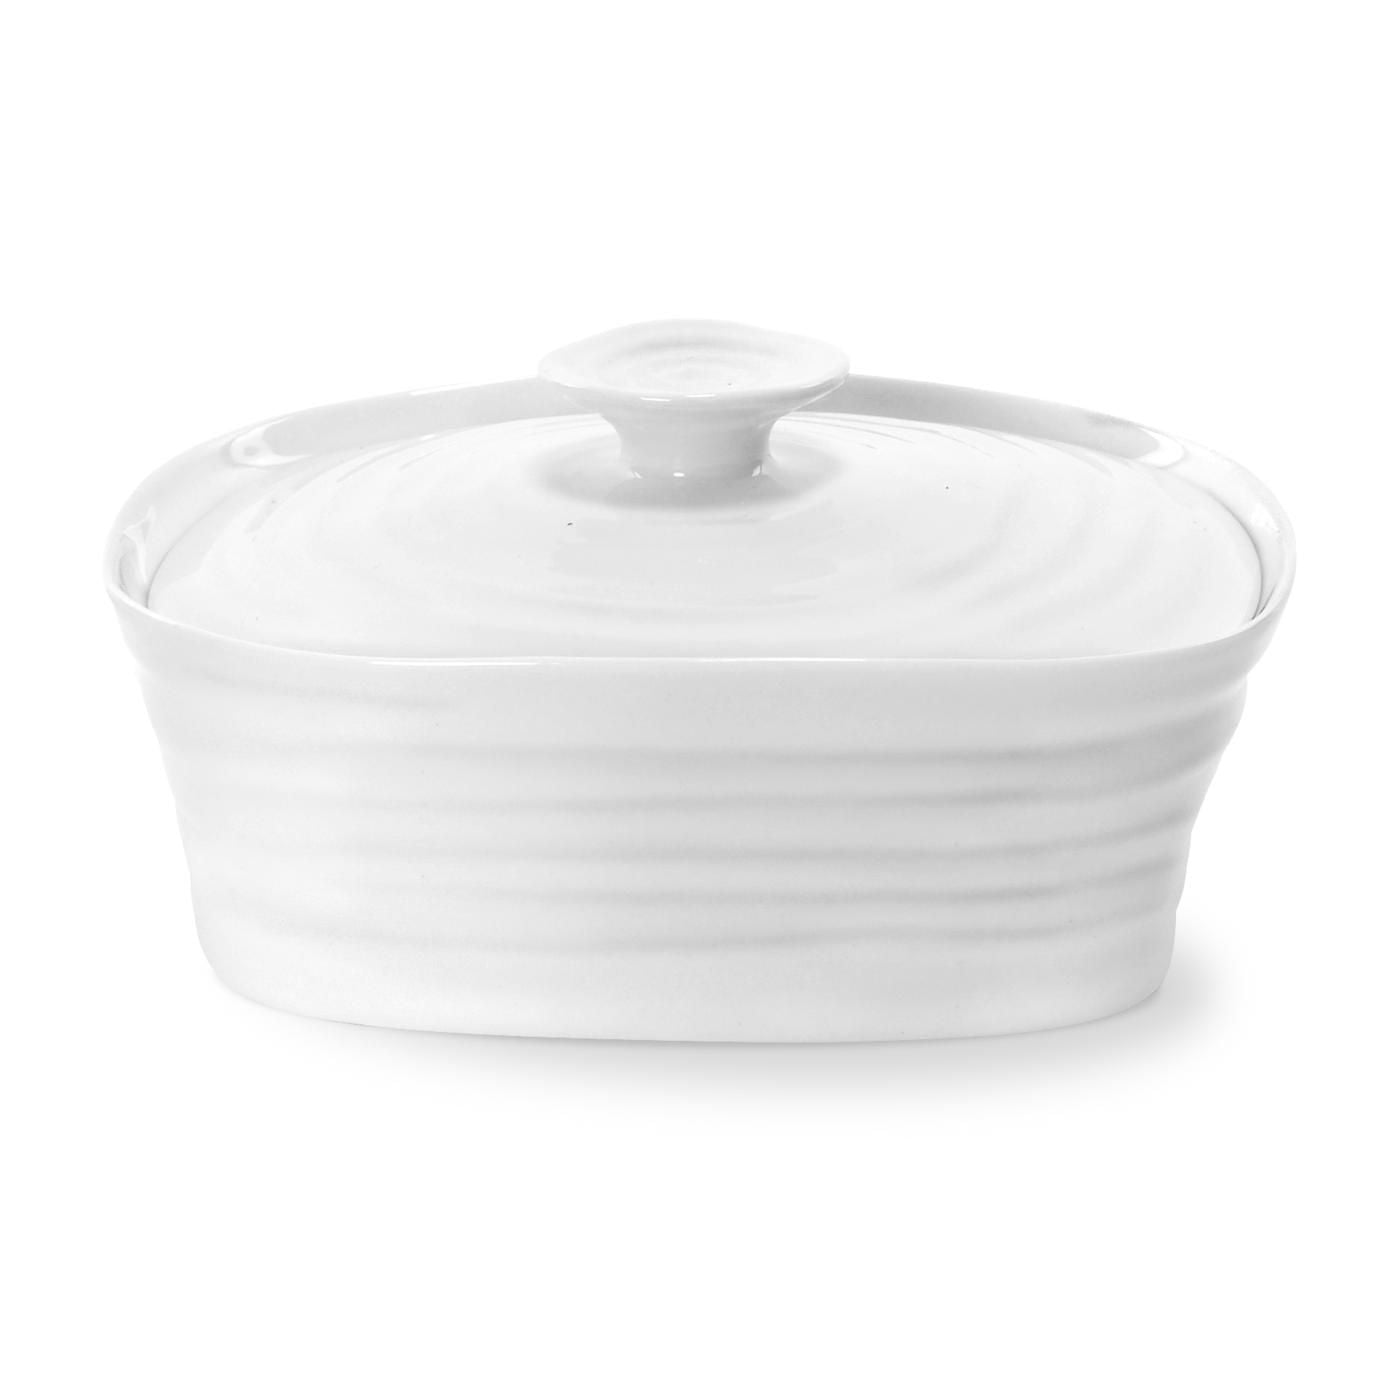 Sophie Conran for Portmeirion White Covered Butter Dish